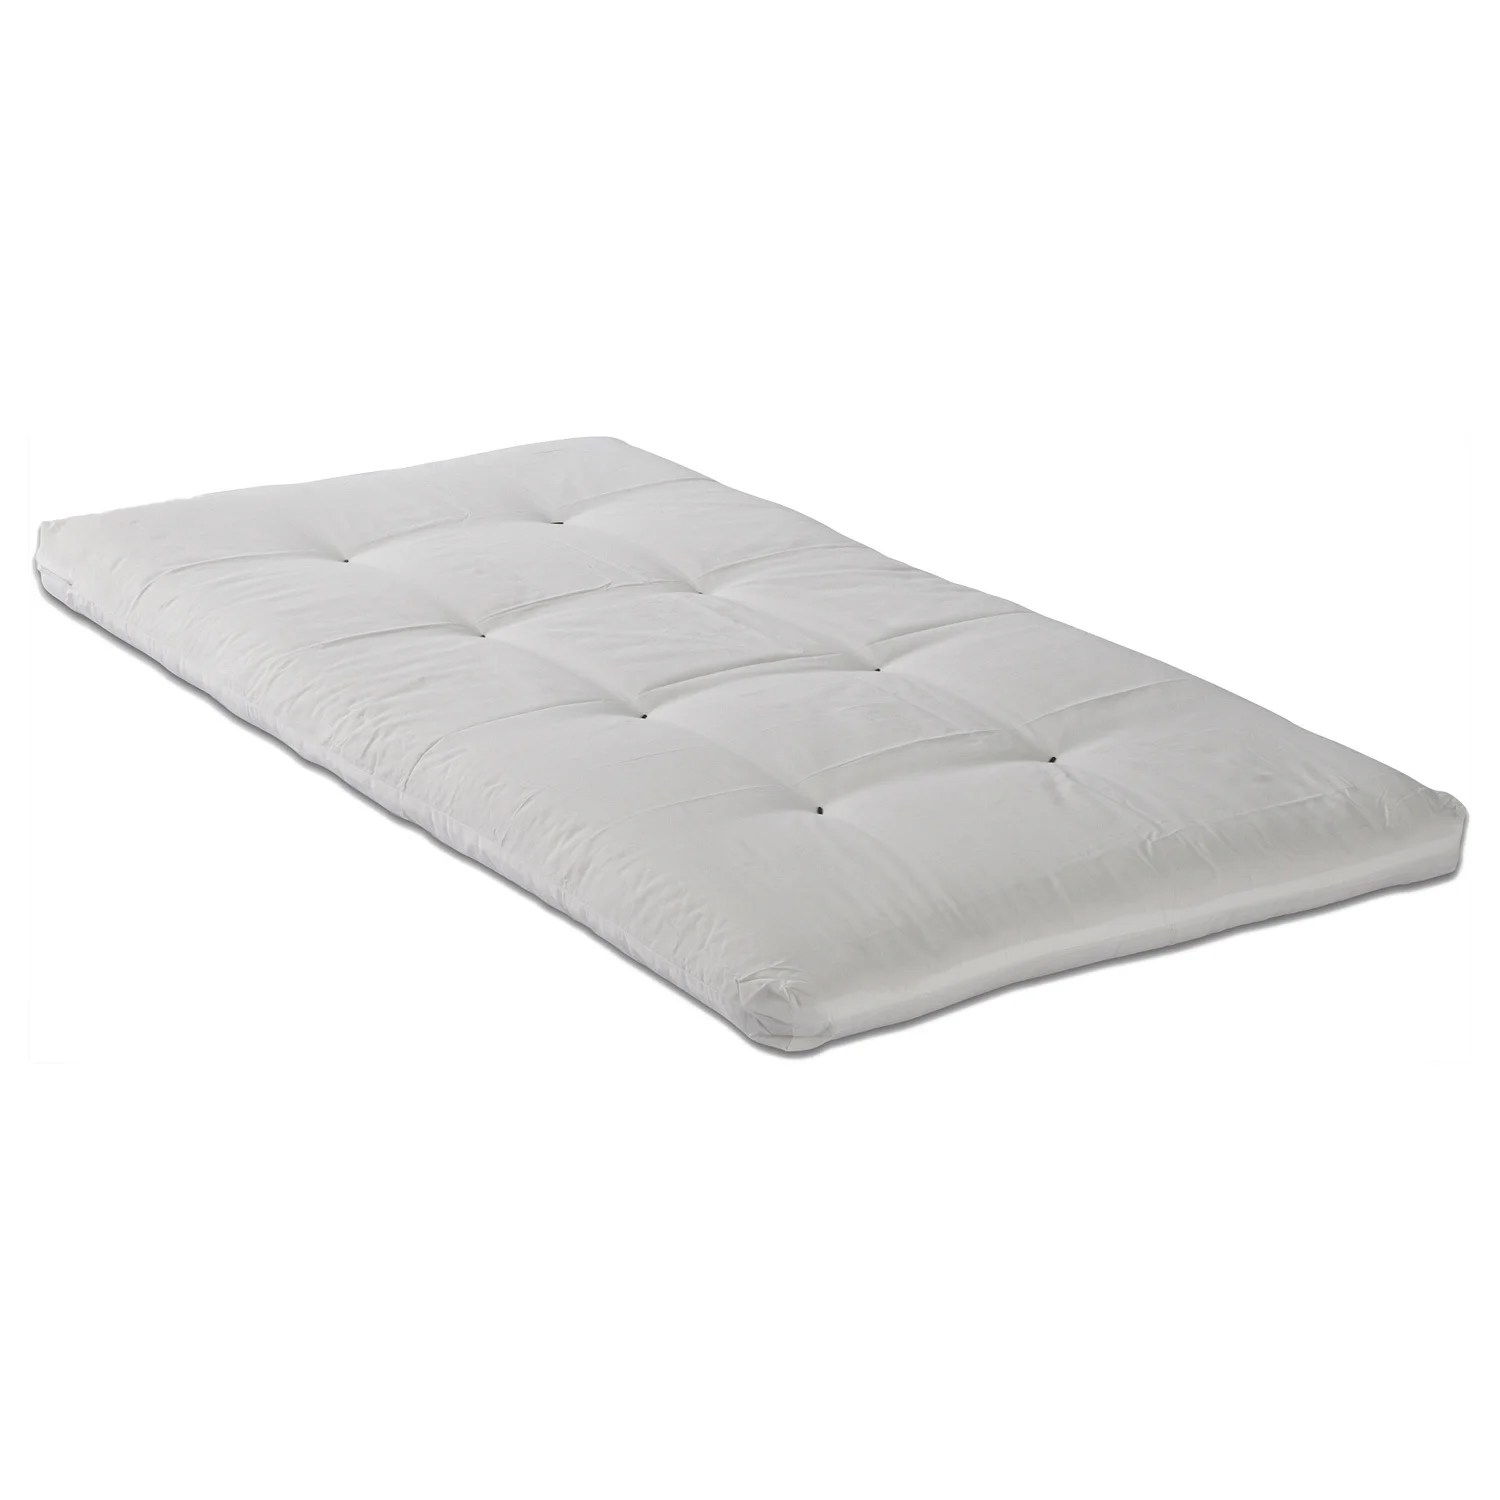 Double Bed Mattress Cover Somette 5 Inch Double Sided Cotton Foam Youth Twin Size Memory Foam Mattress White